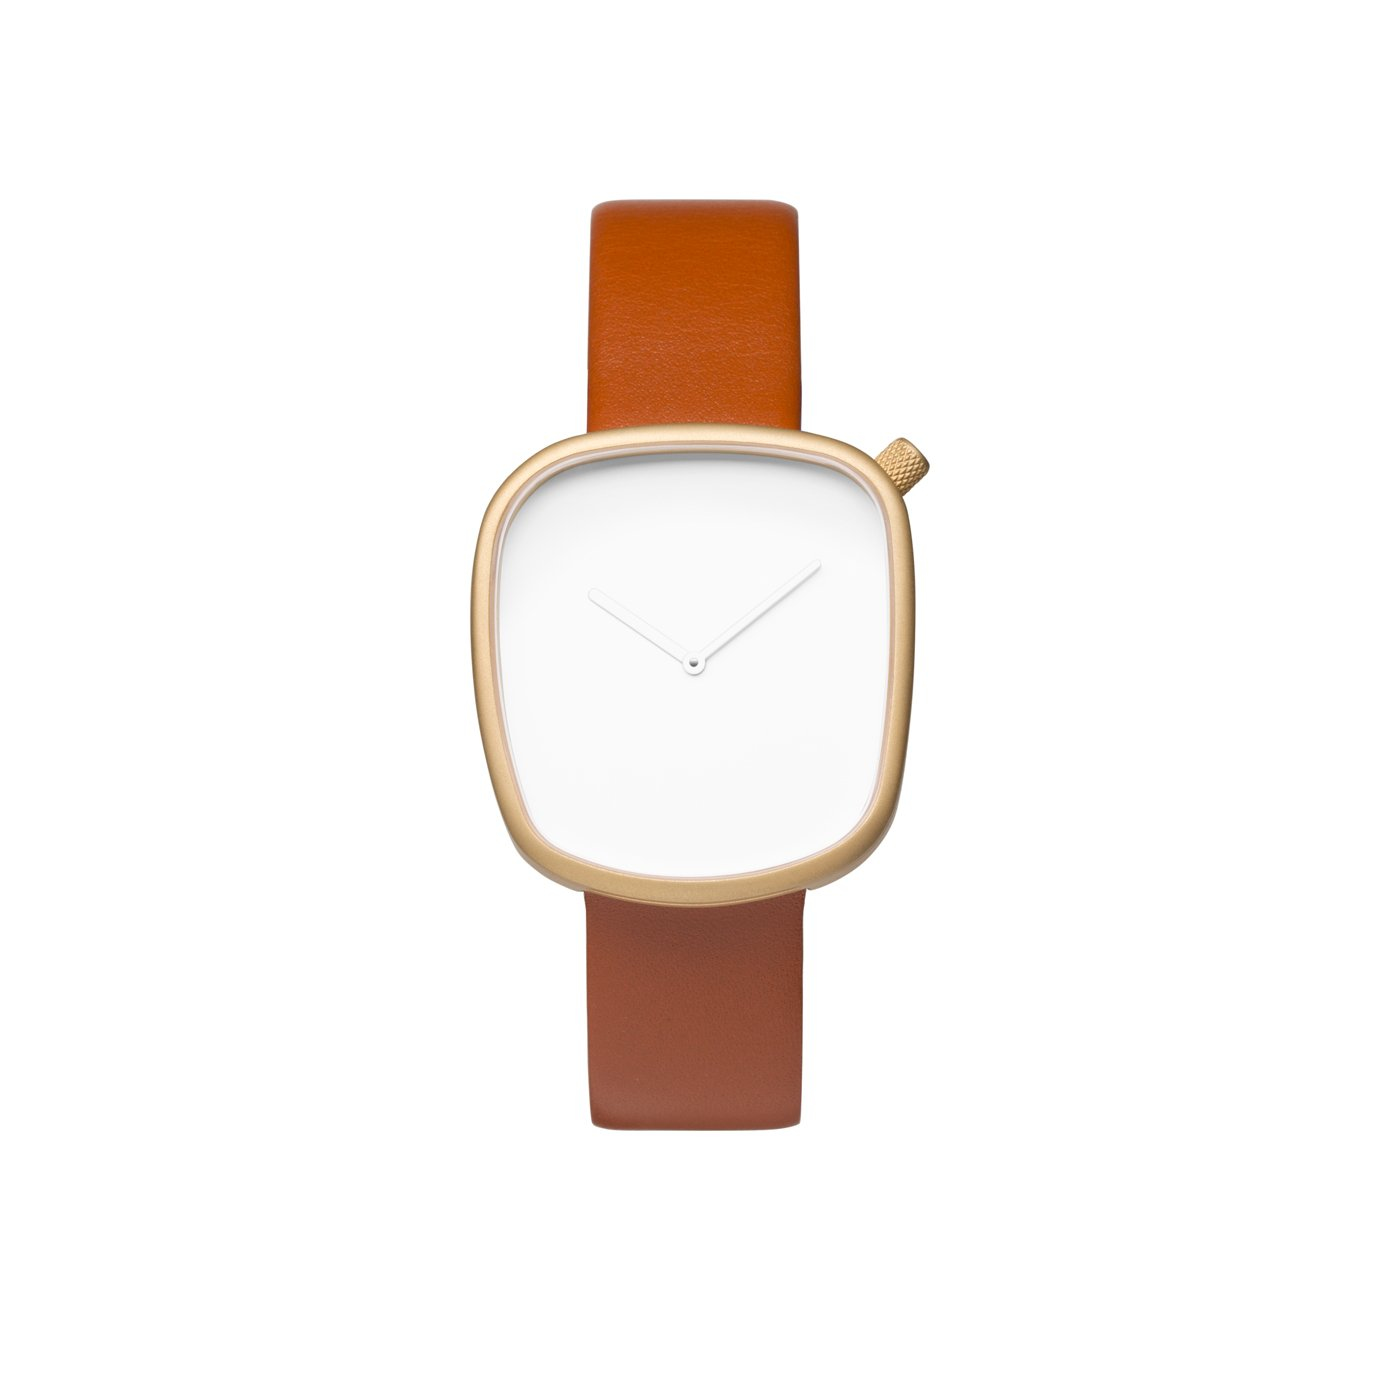 Pebble 05 by Bulbul Watches -24521